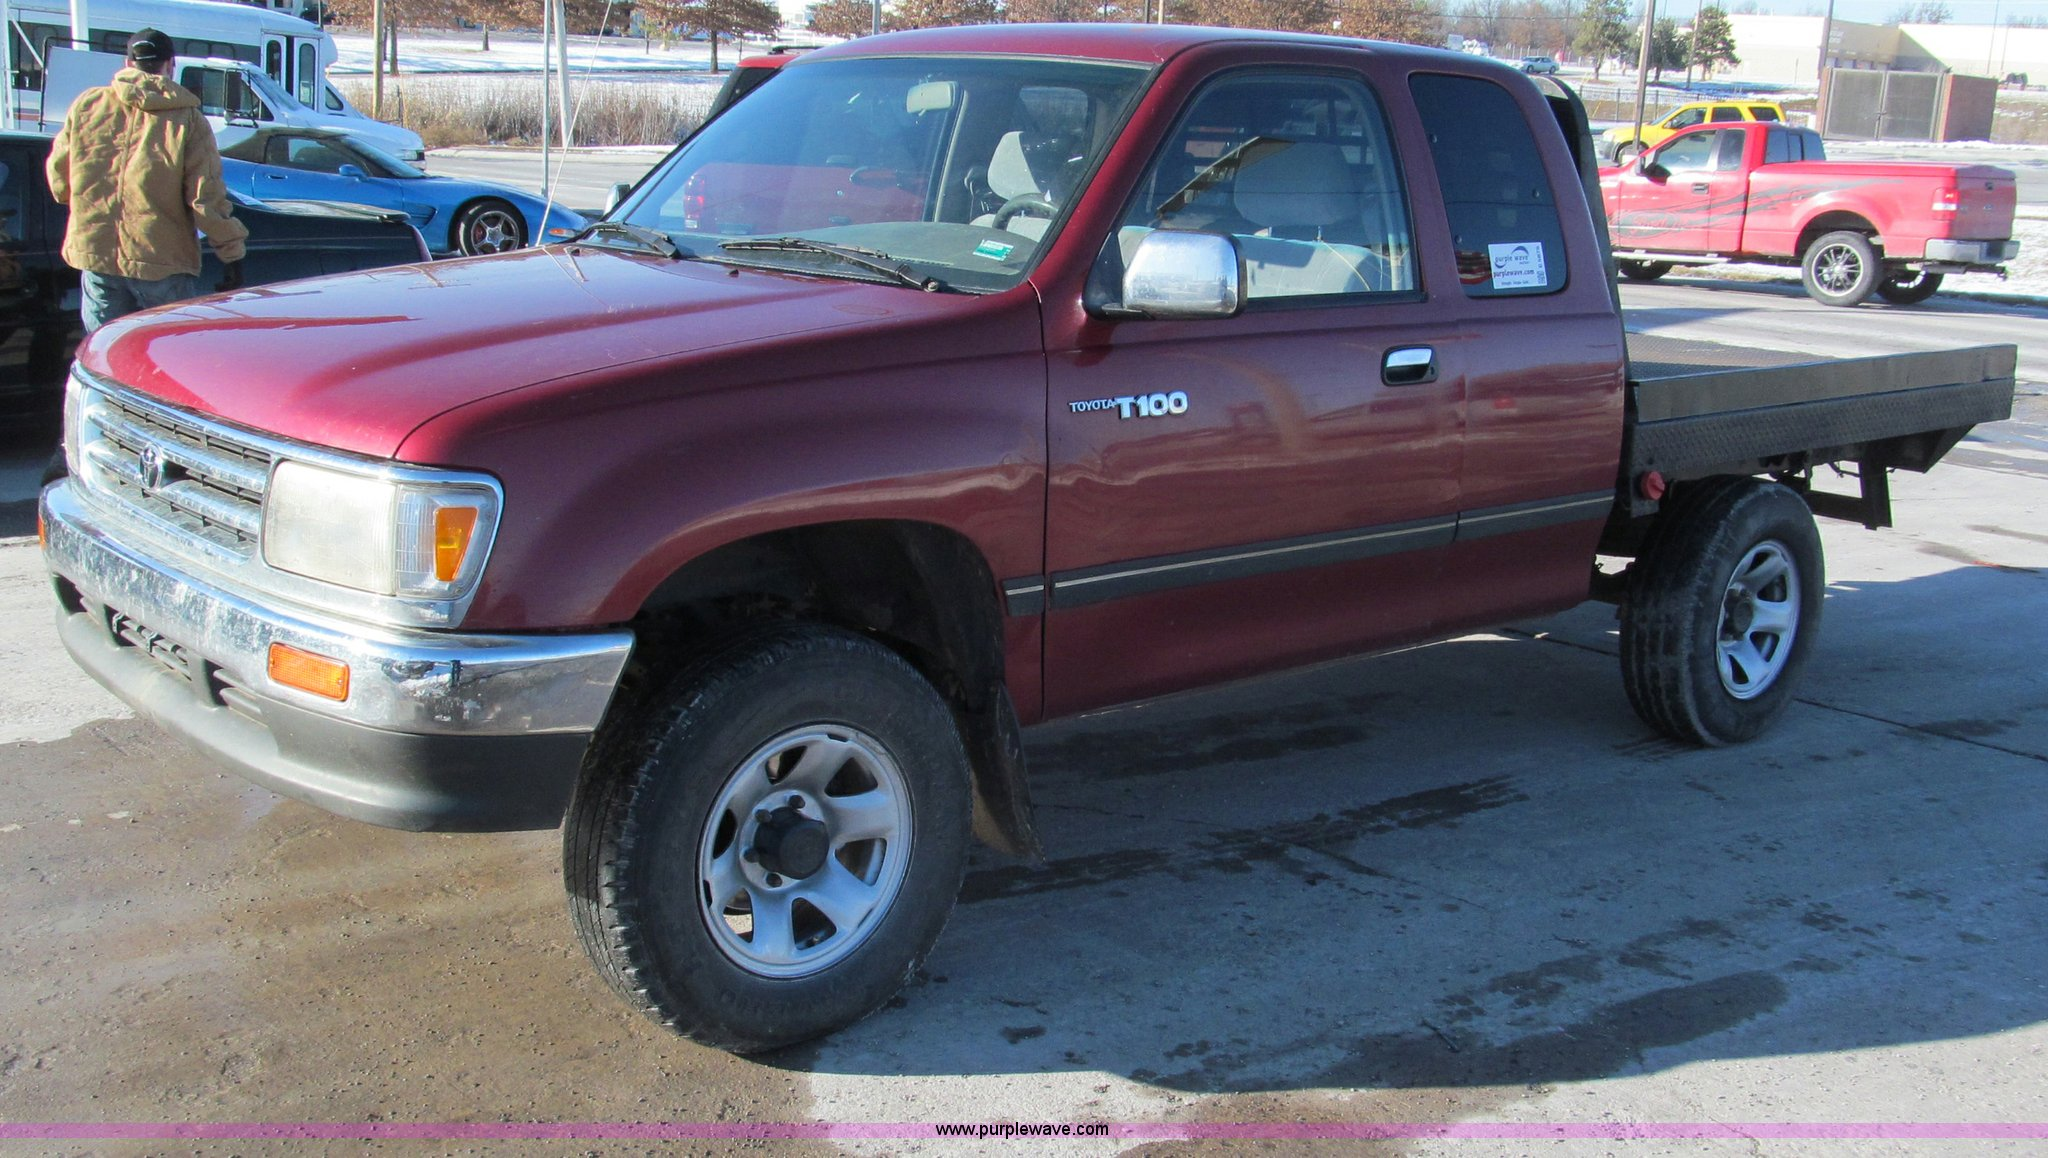 1997 Toyota T100 Dx Xtracab Flatbed Pickup Truck Item E587